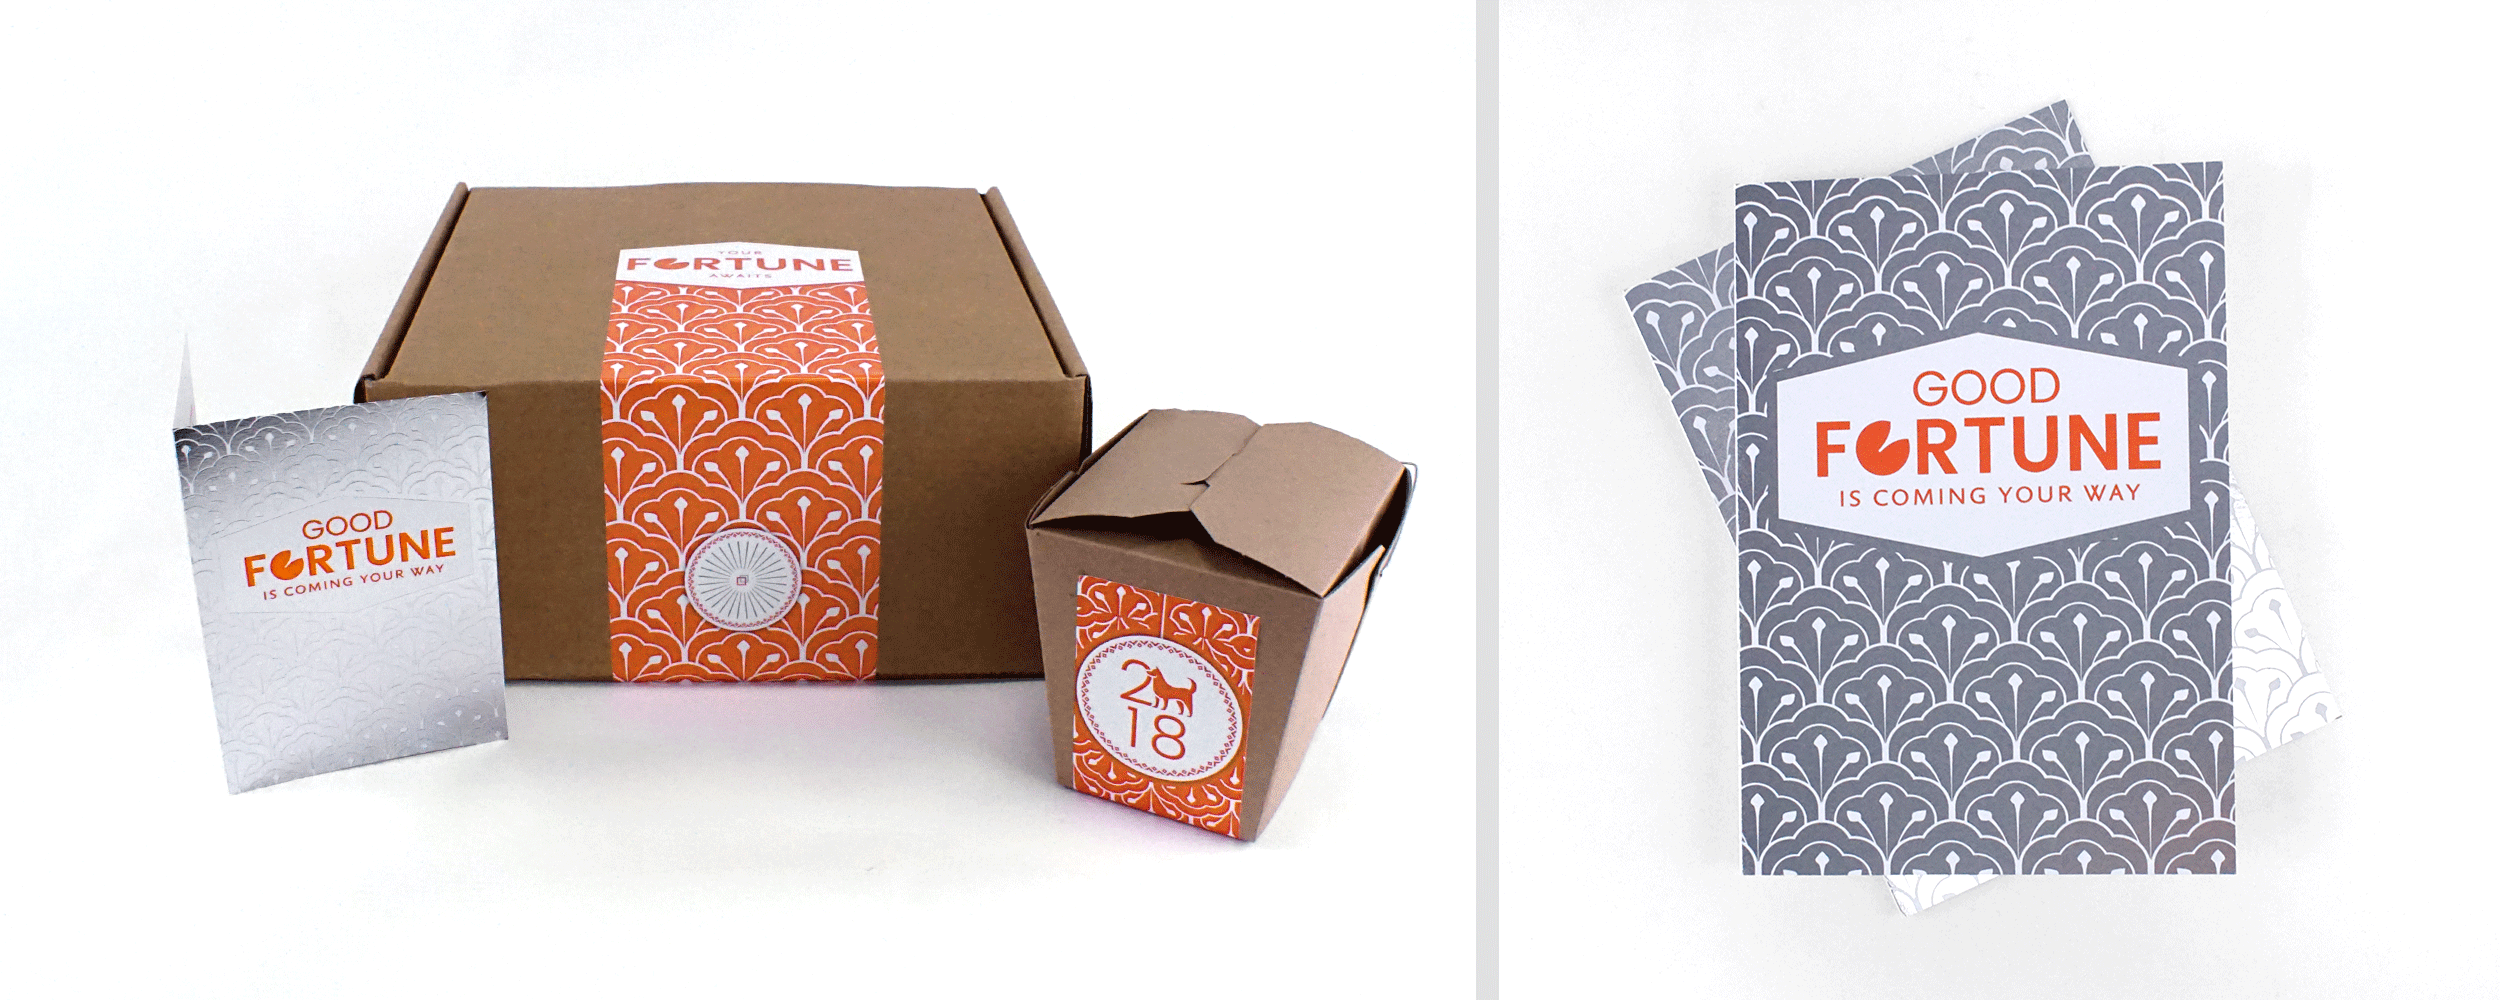 Image of gift including a card, box, and shipping box.